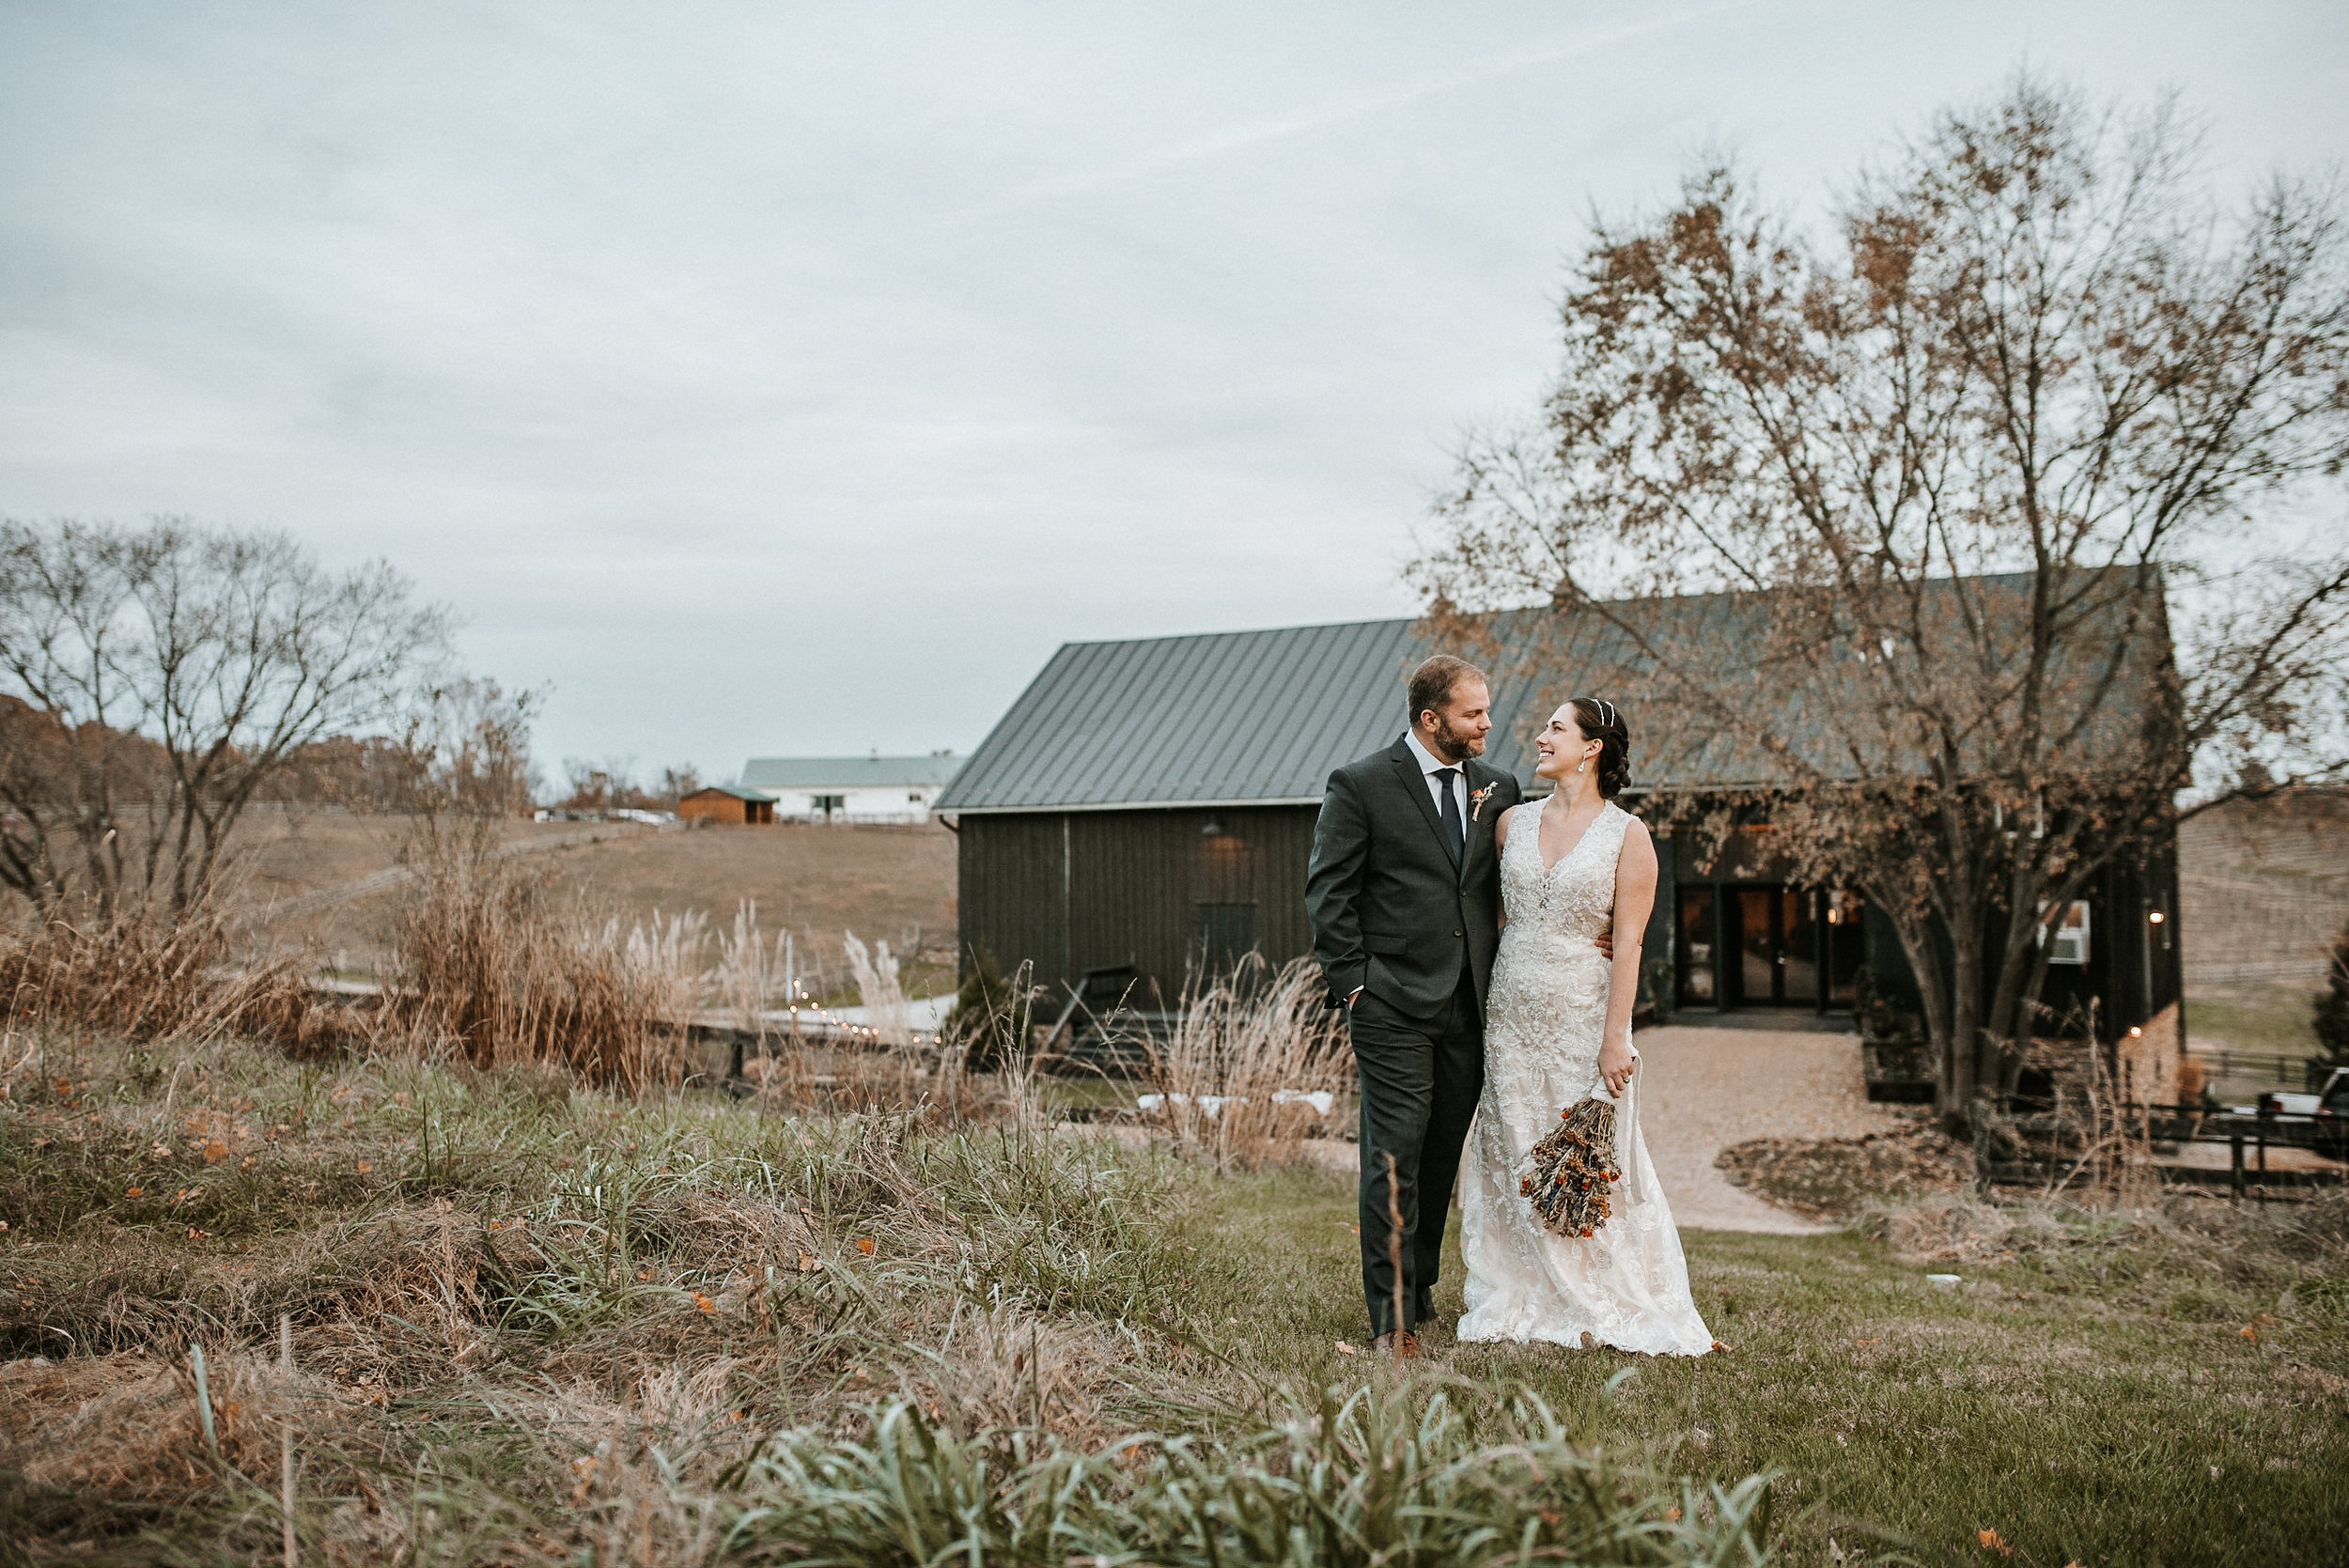 Bride and groom in front of black barn